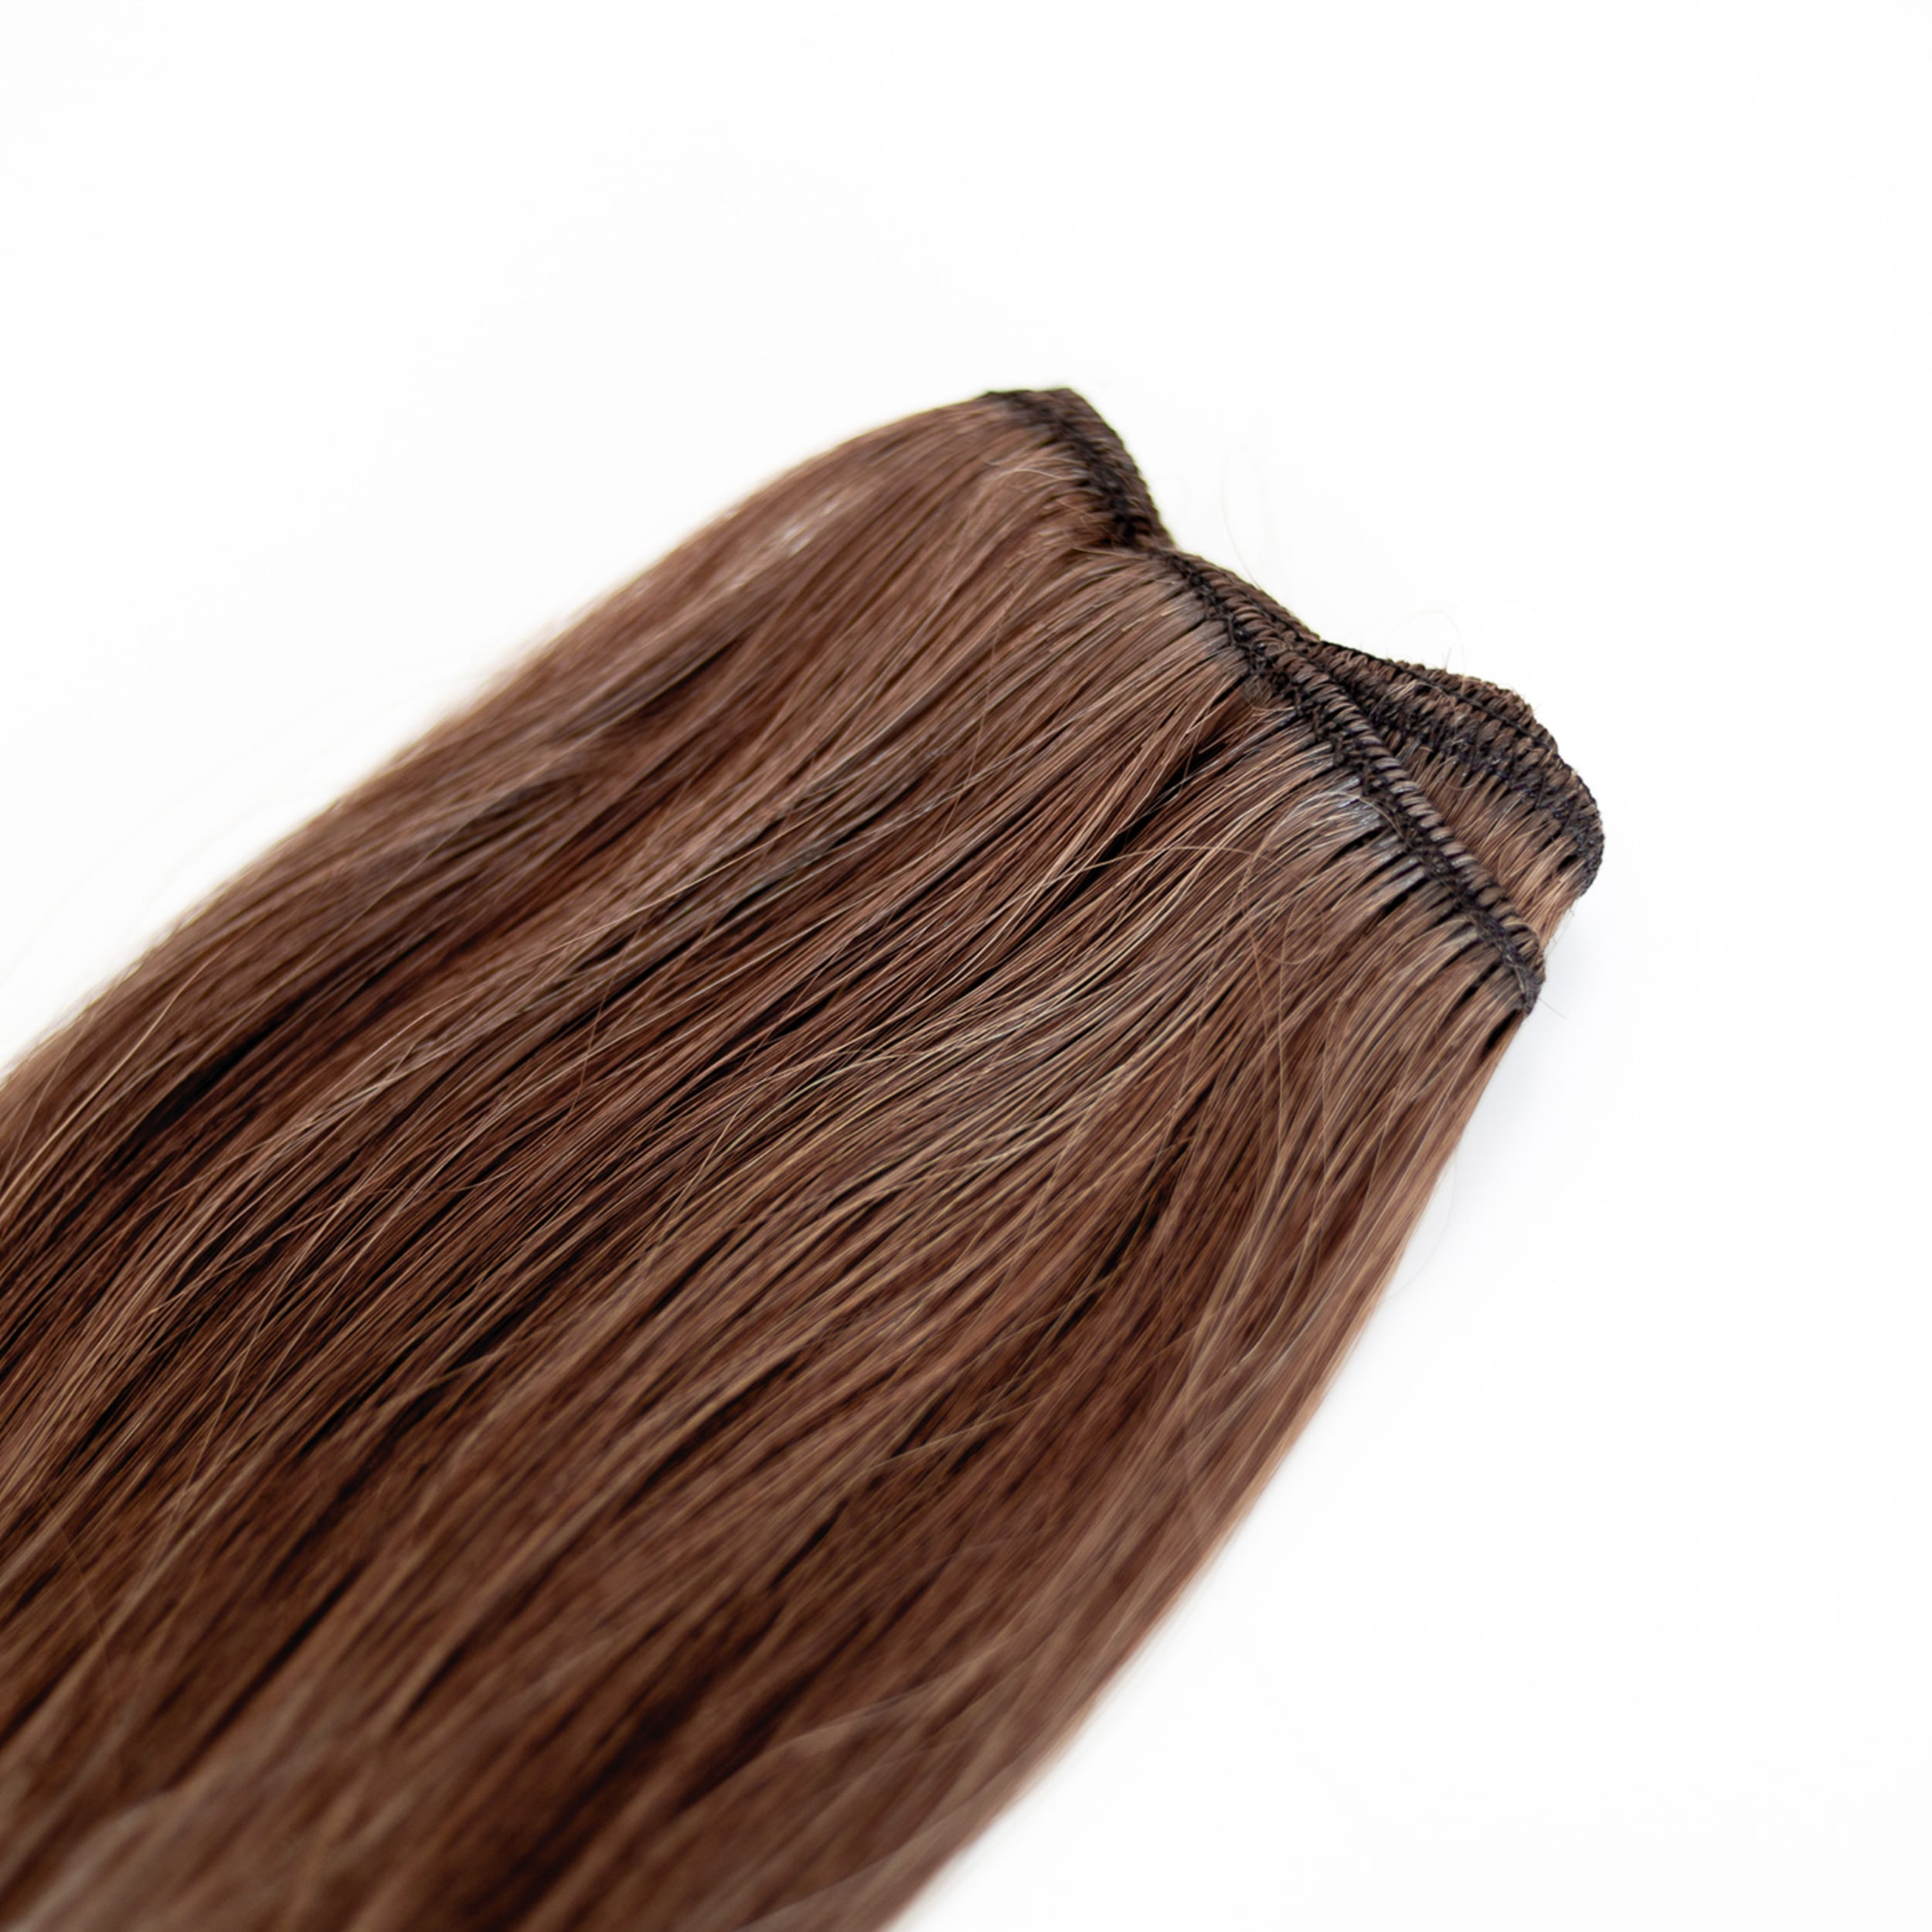 Mocha Weft Hair Extensions Ultimate 24 Inch